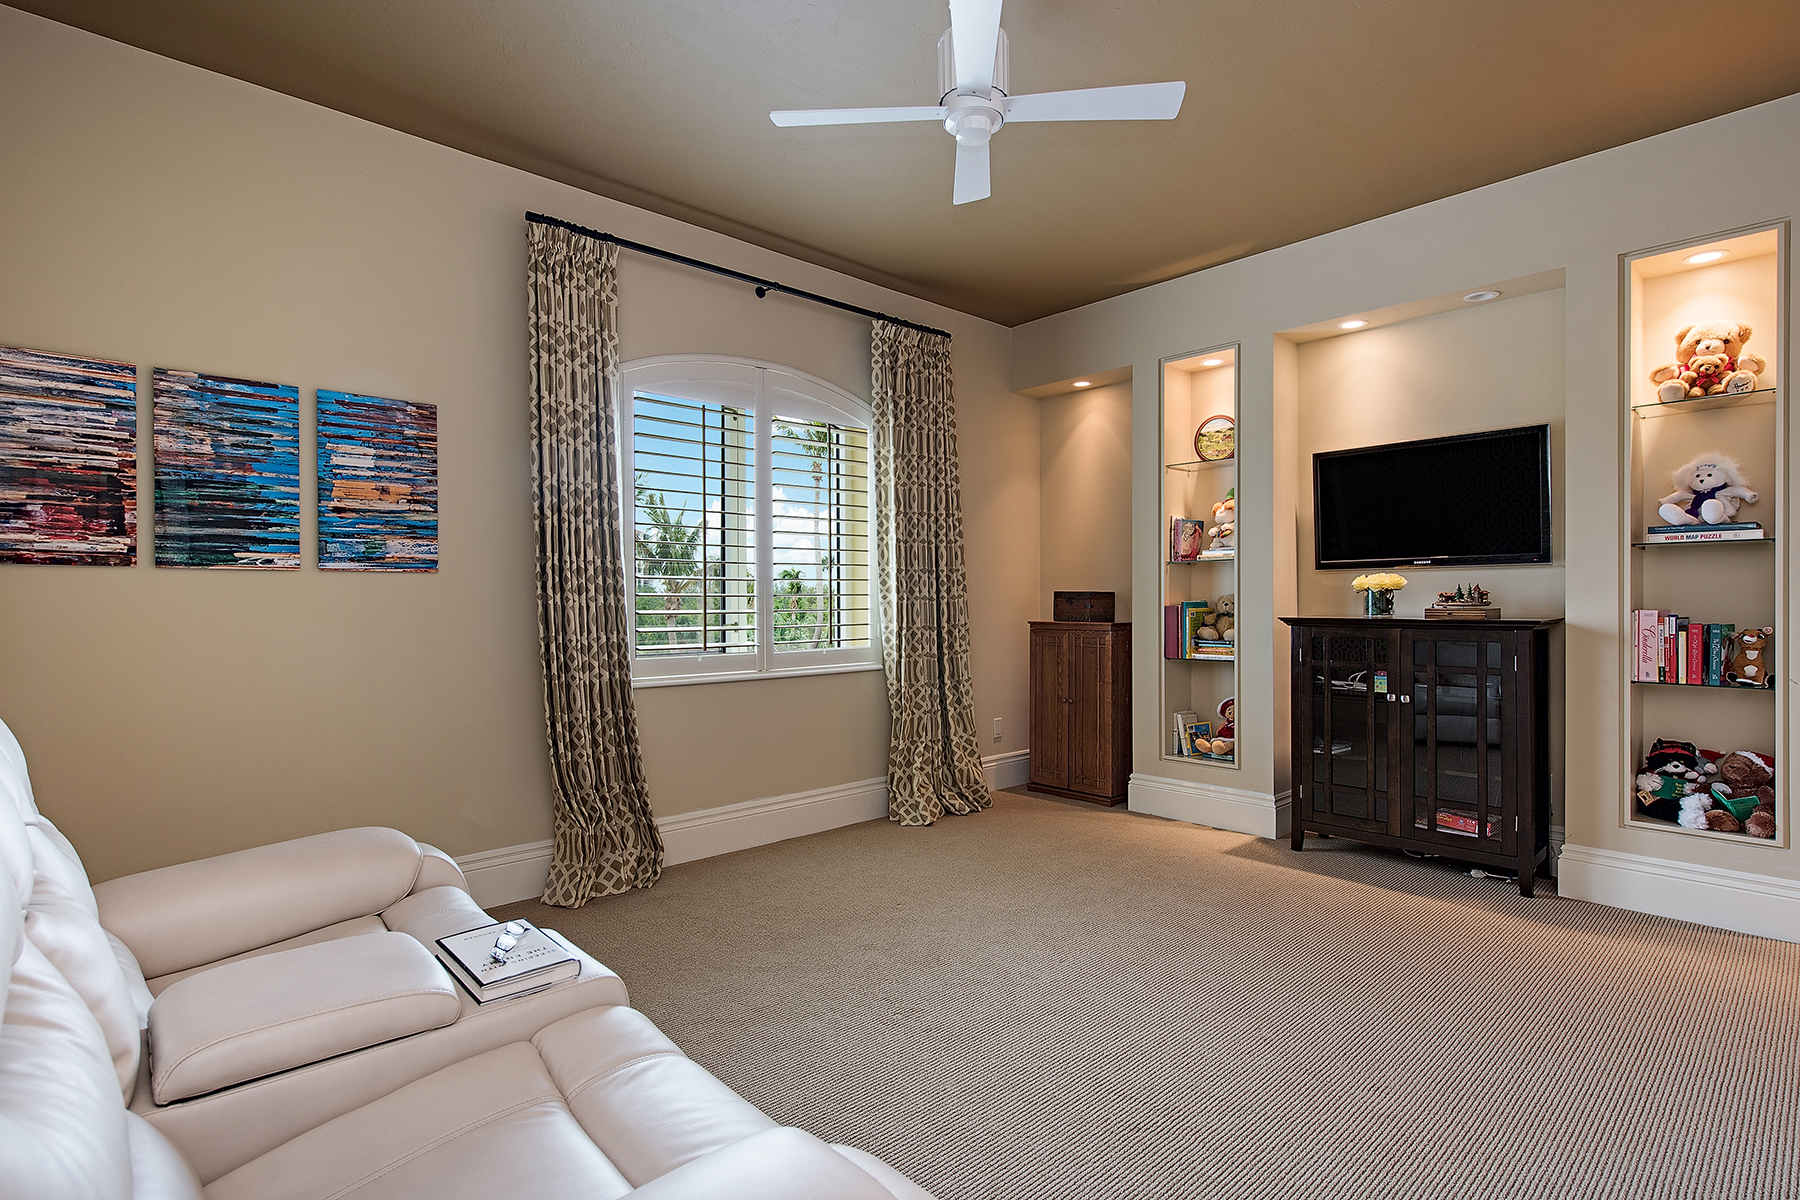 Additional photo for property listing at PELICAN AY - WINDSOR AT BAY COLONY 8477  Bay Colony Dr 301,  Naples, Florida 34108 United States